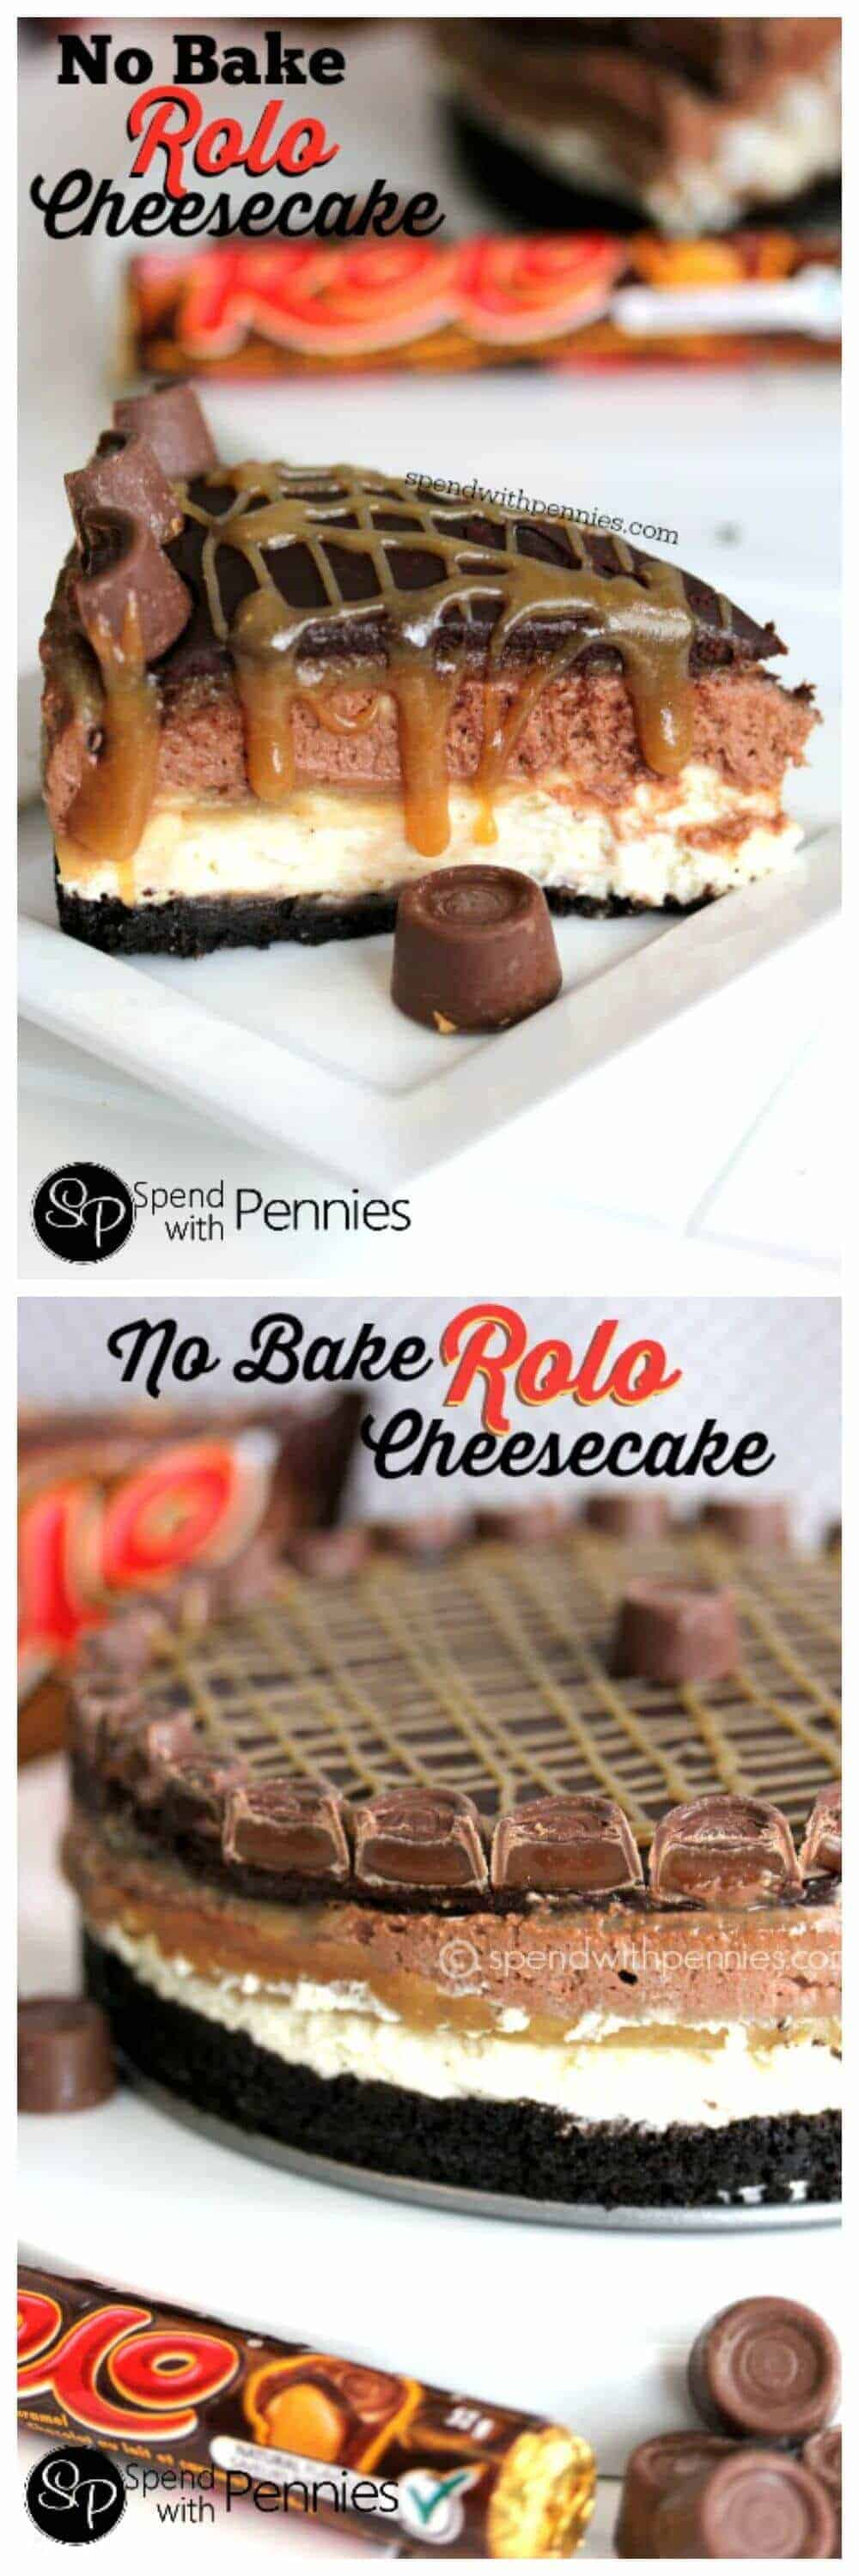 No Bake Rolo Cheesecake with rolos and a title